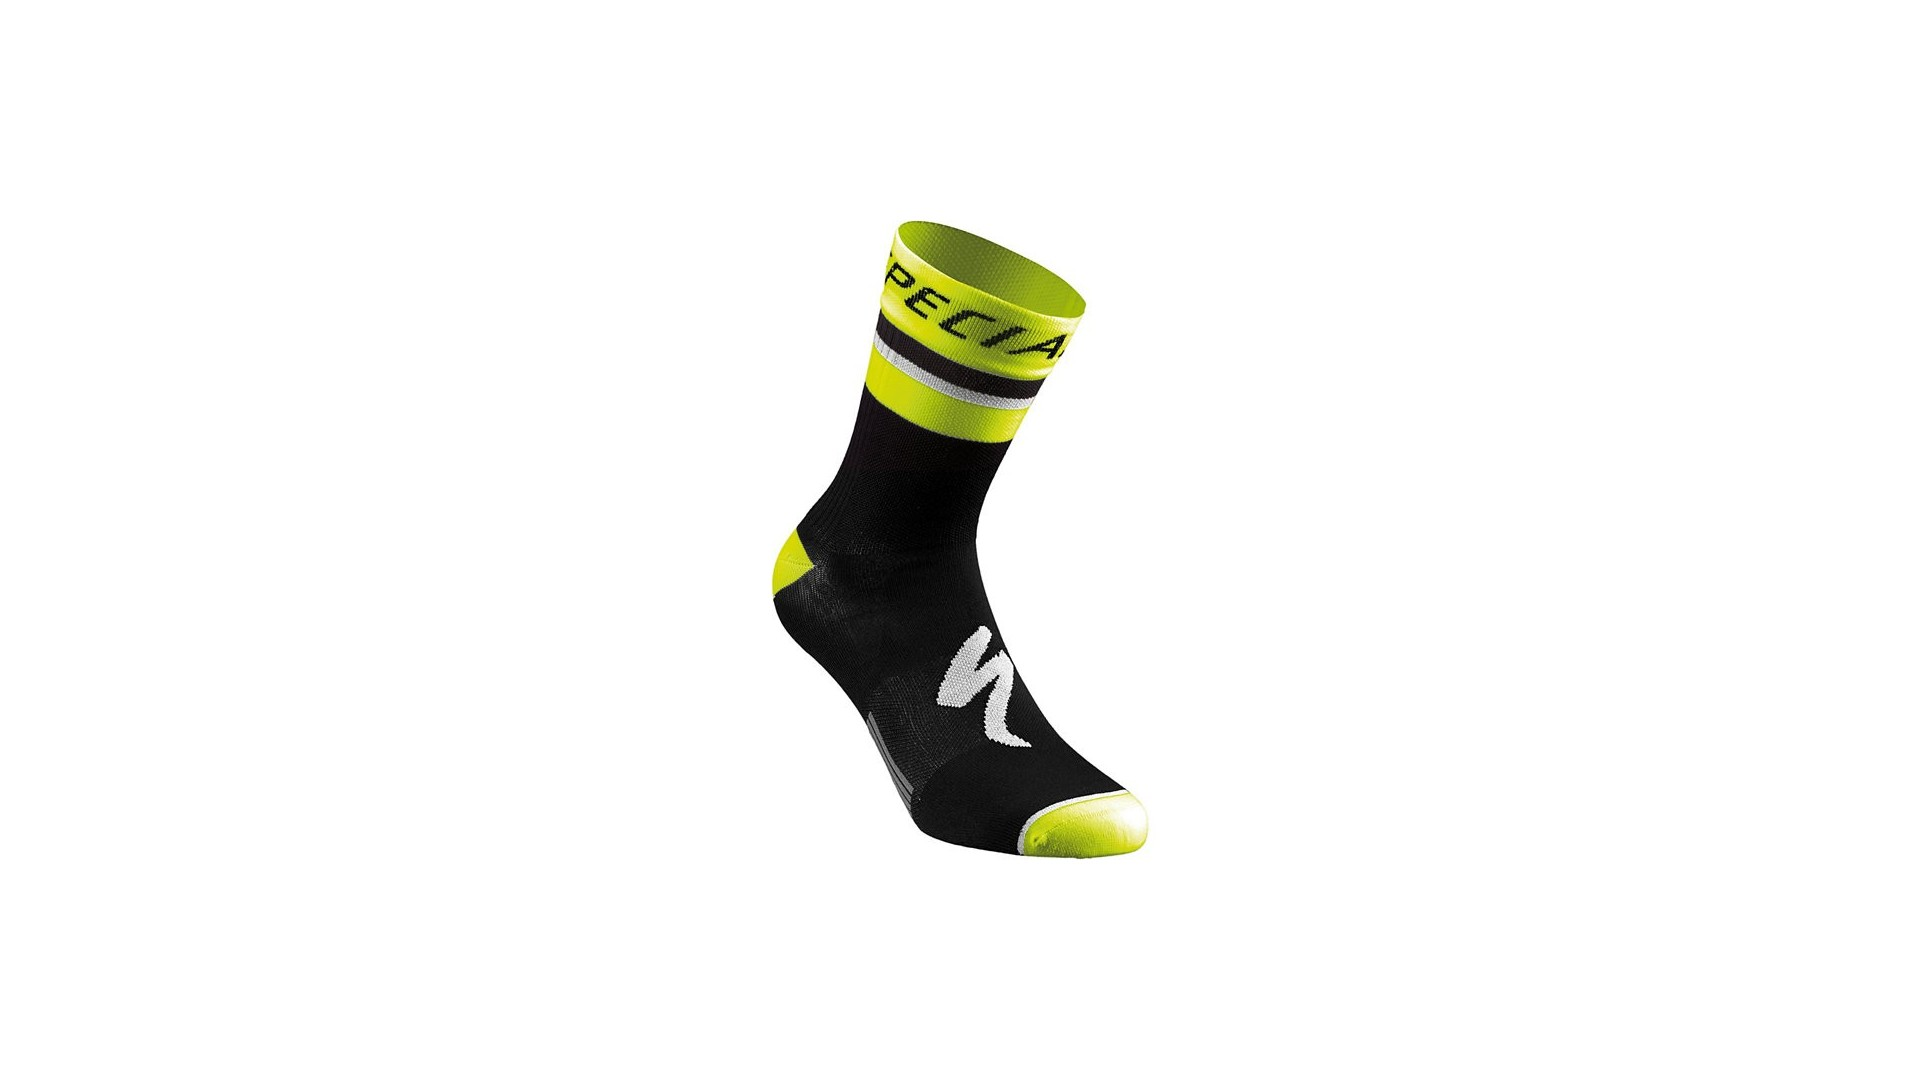 RBX Comp Logo Calcetines Verano Specialized Black/Neon Yellow 1 IBKBike.es